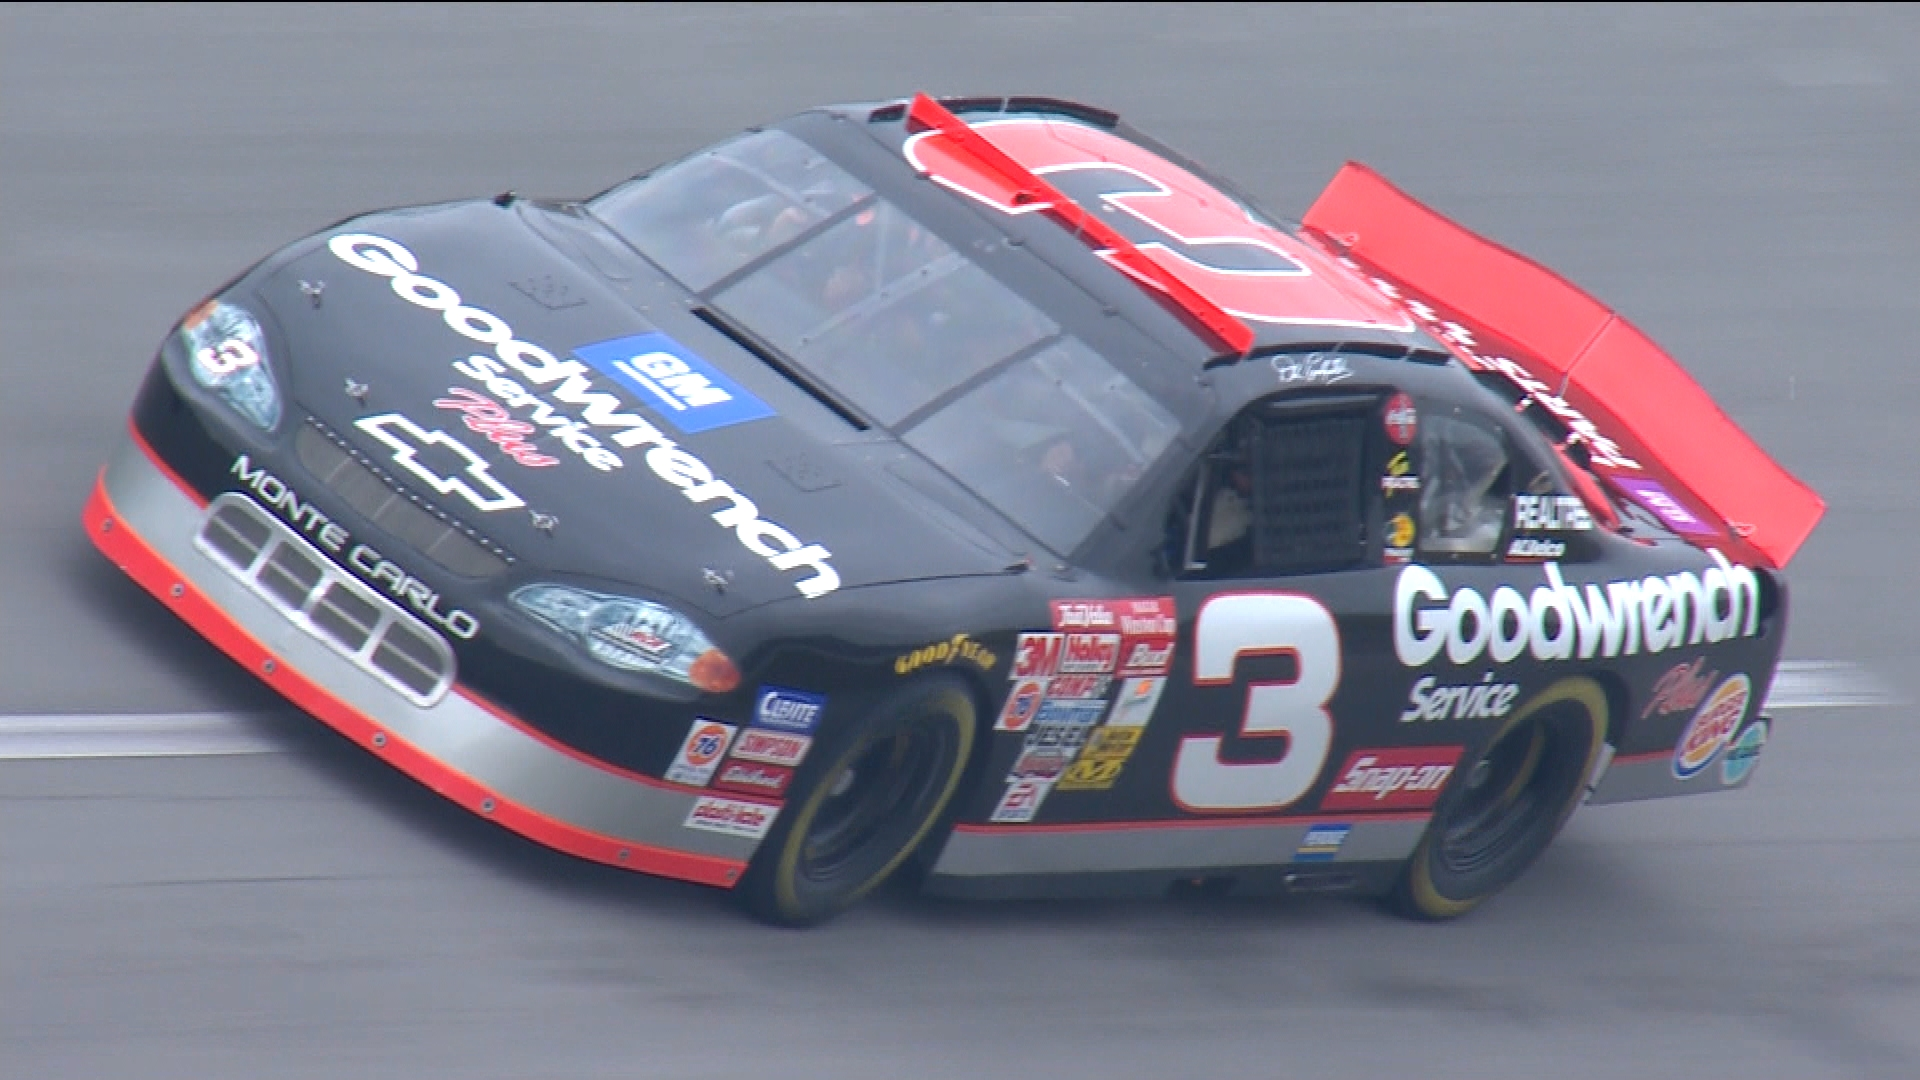 NASCAR: Richard Childress drives Dale Earnhardt's car at Talladega